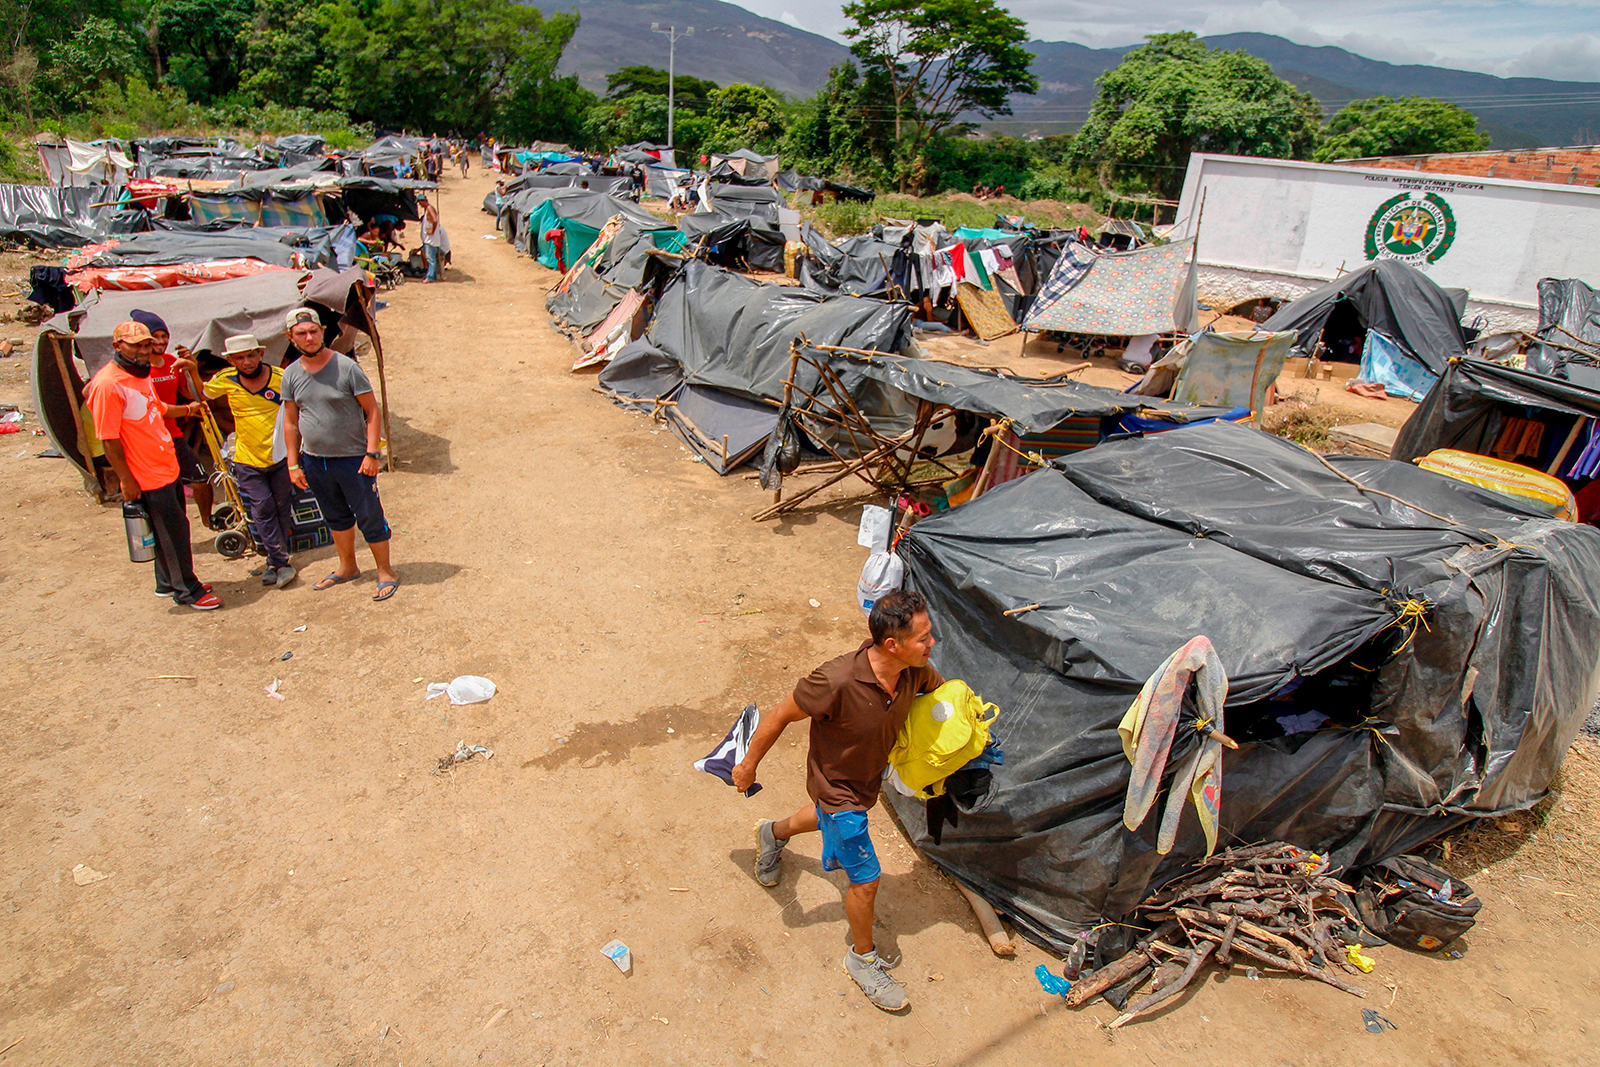 Venezuelan migrants attempting to return to their country due to the Covid-19 pandemic remain in makeshift camps at the Simon Bolivar International Bridge in Cucuta, Colombia, on July 7.